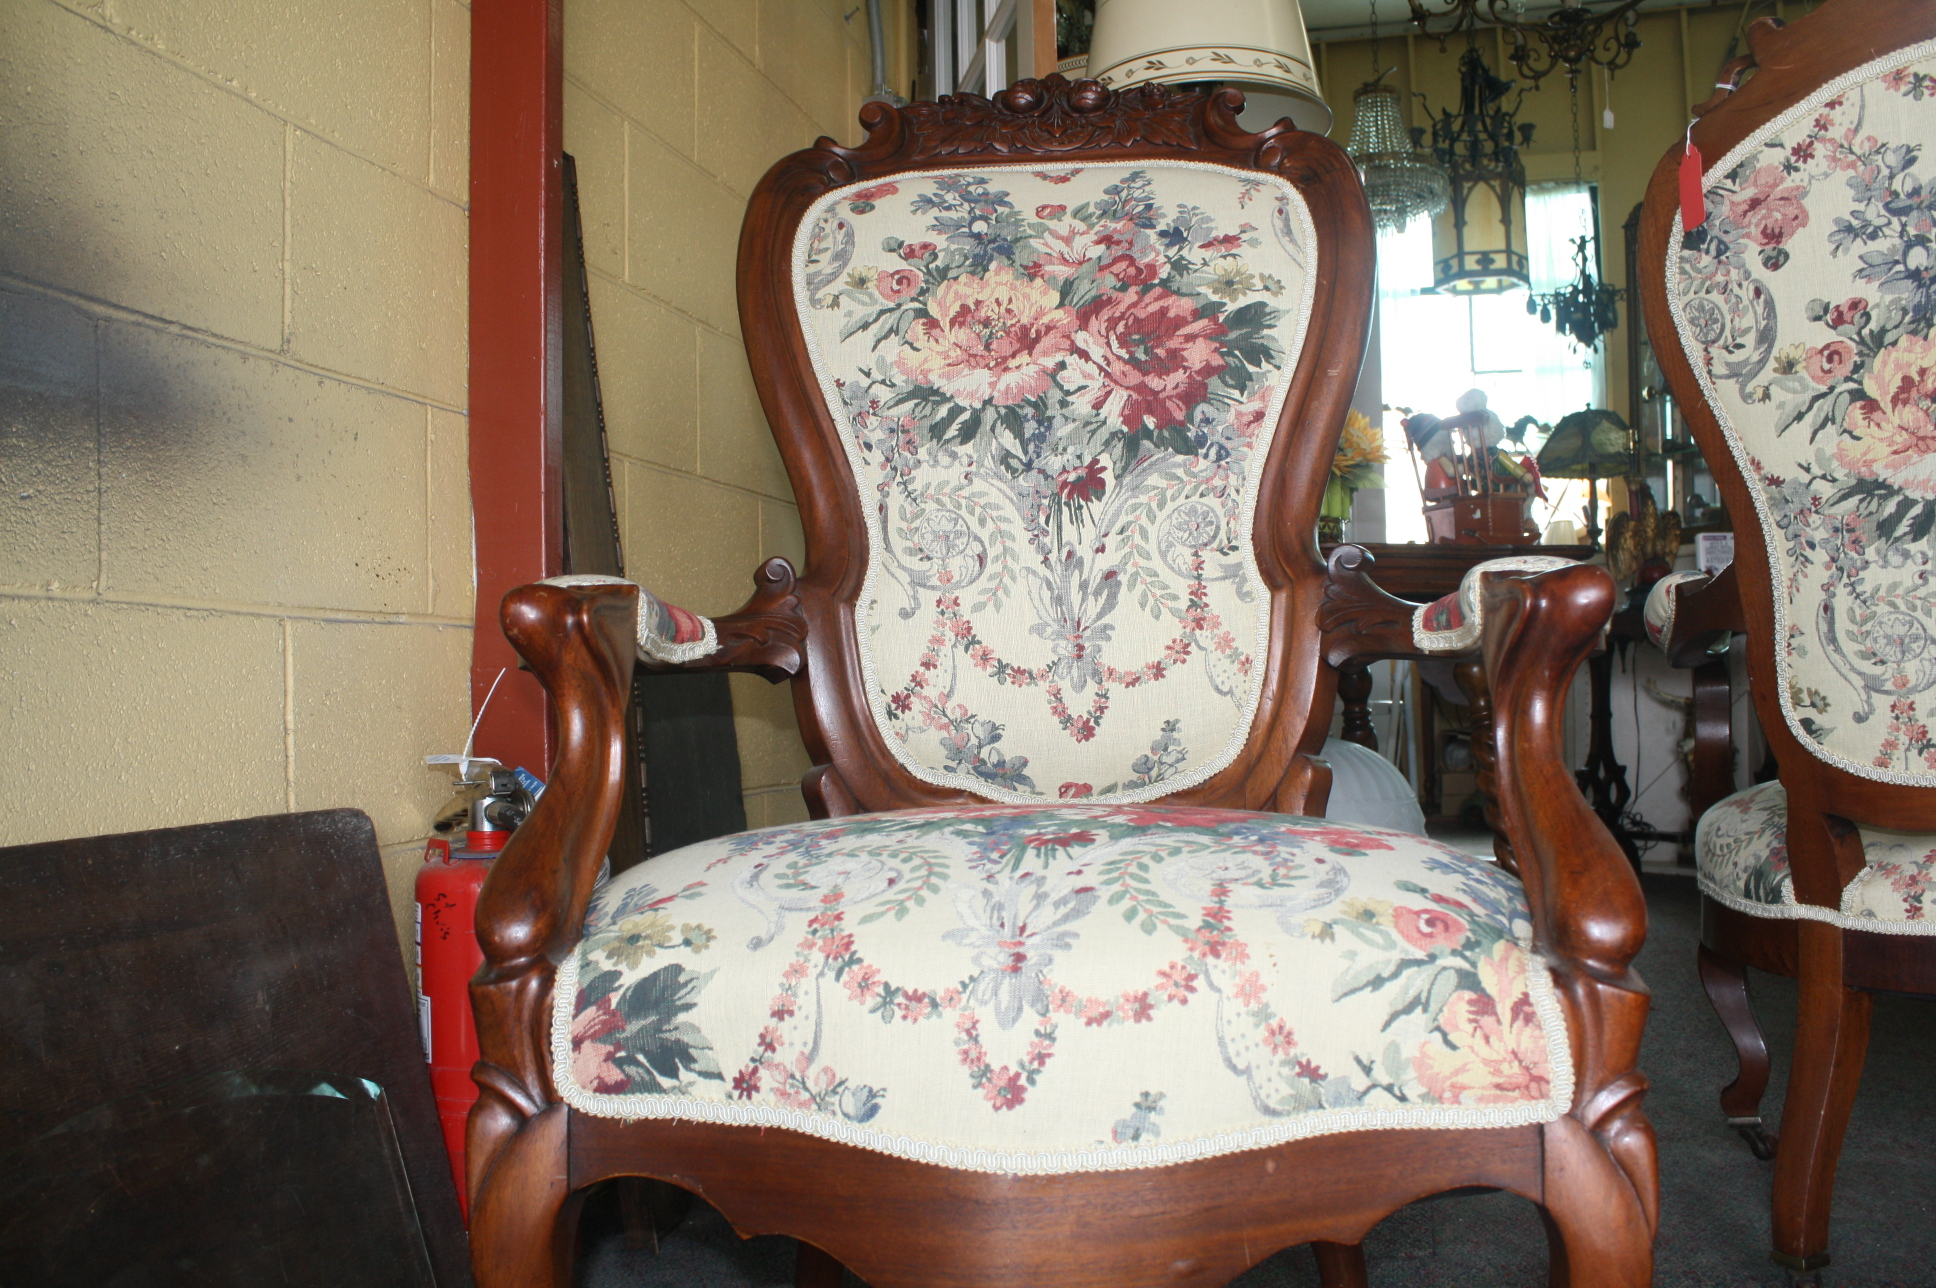 Antique victorian parlor chairs - Super Set Of Sturdy Floral Victorian Parlor Chairs Have Extra Wide Seats New Upholstery And Springs One Has Four Casters One Has Wide Arms And Extra